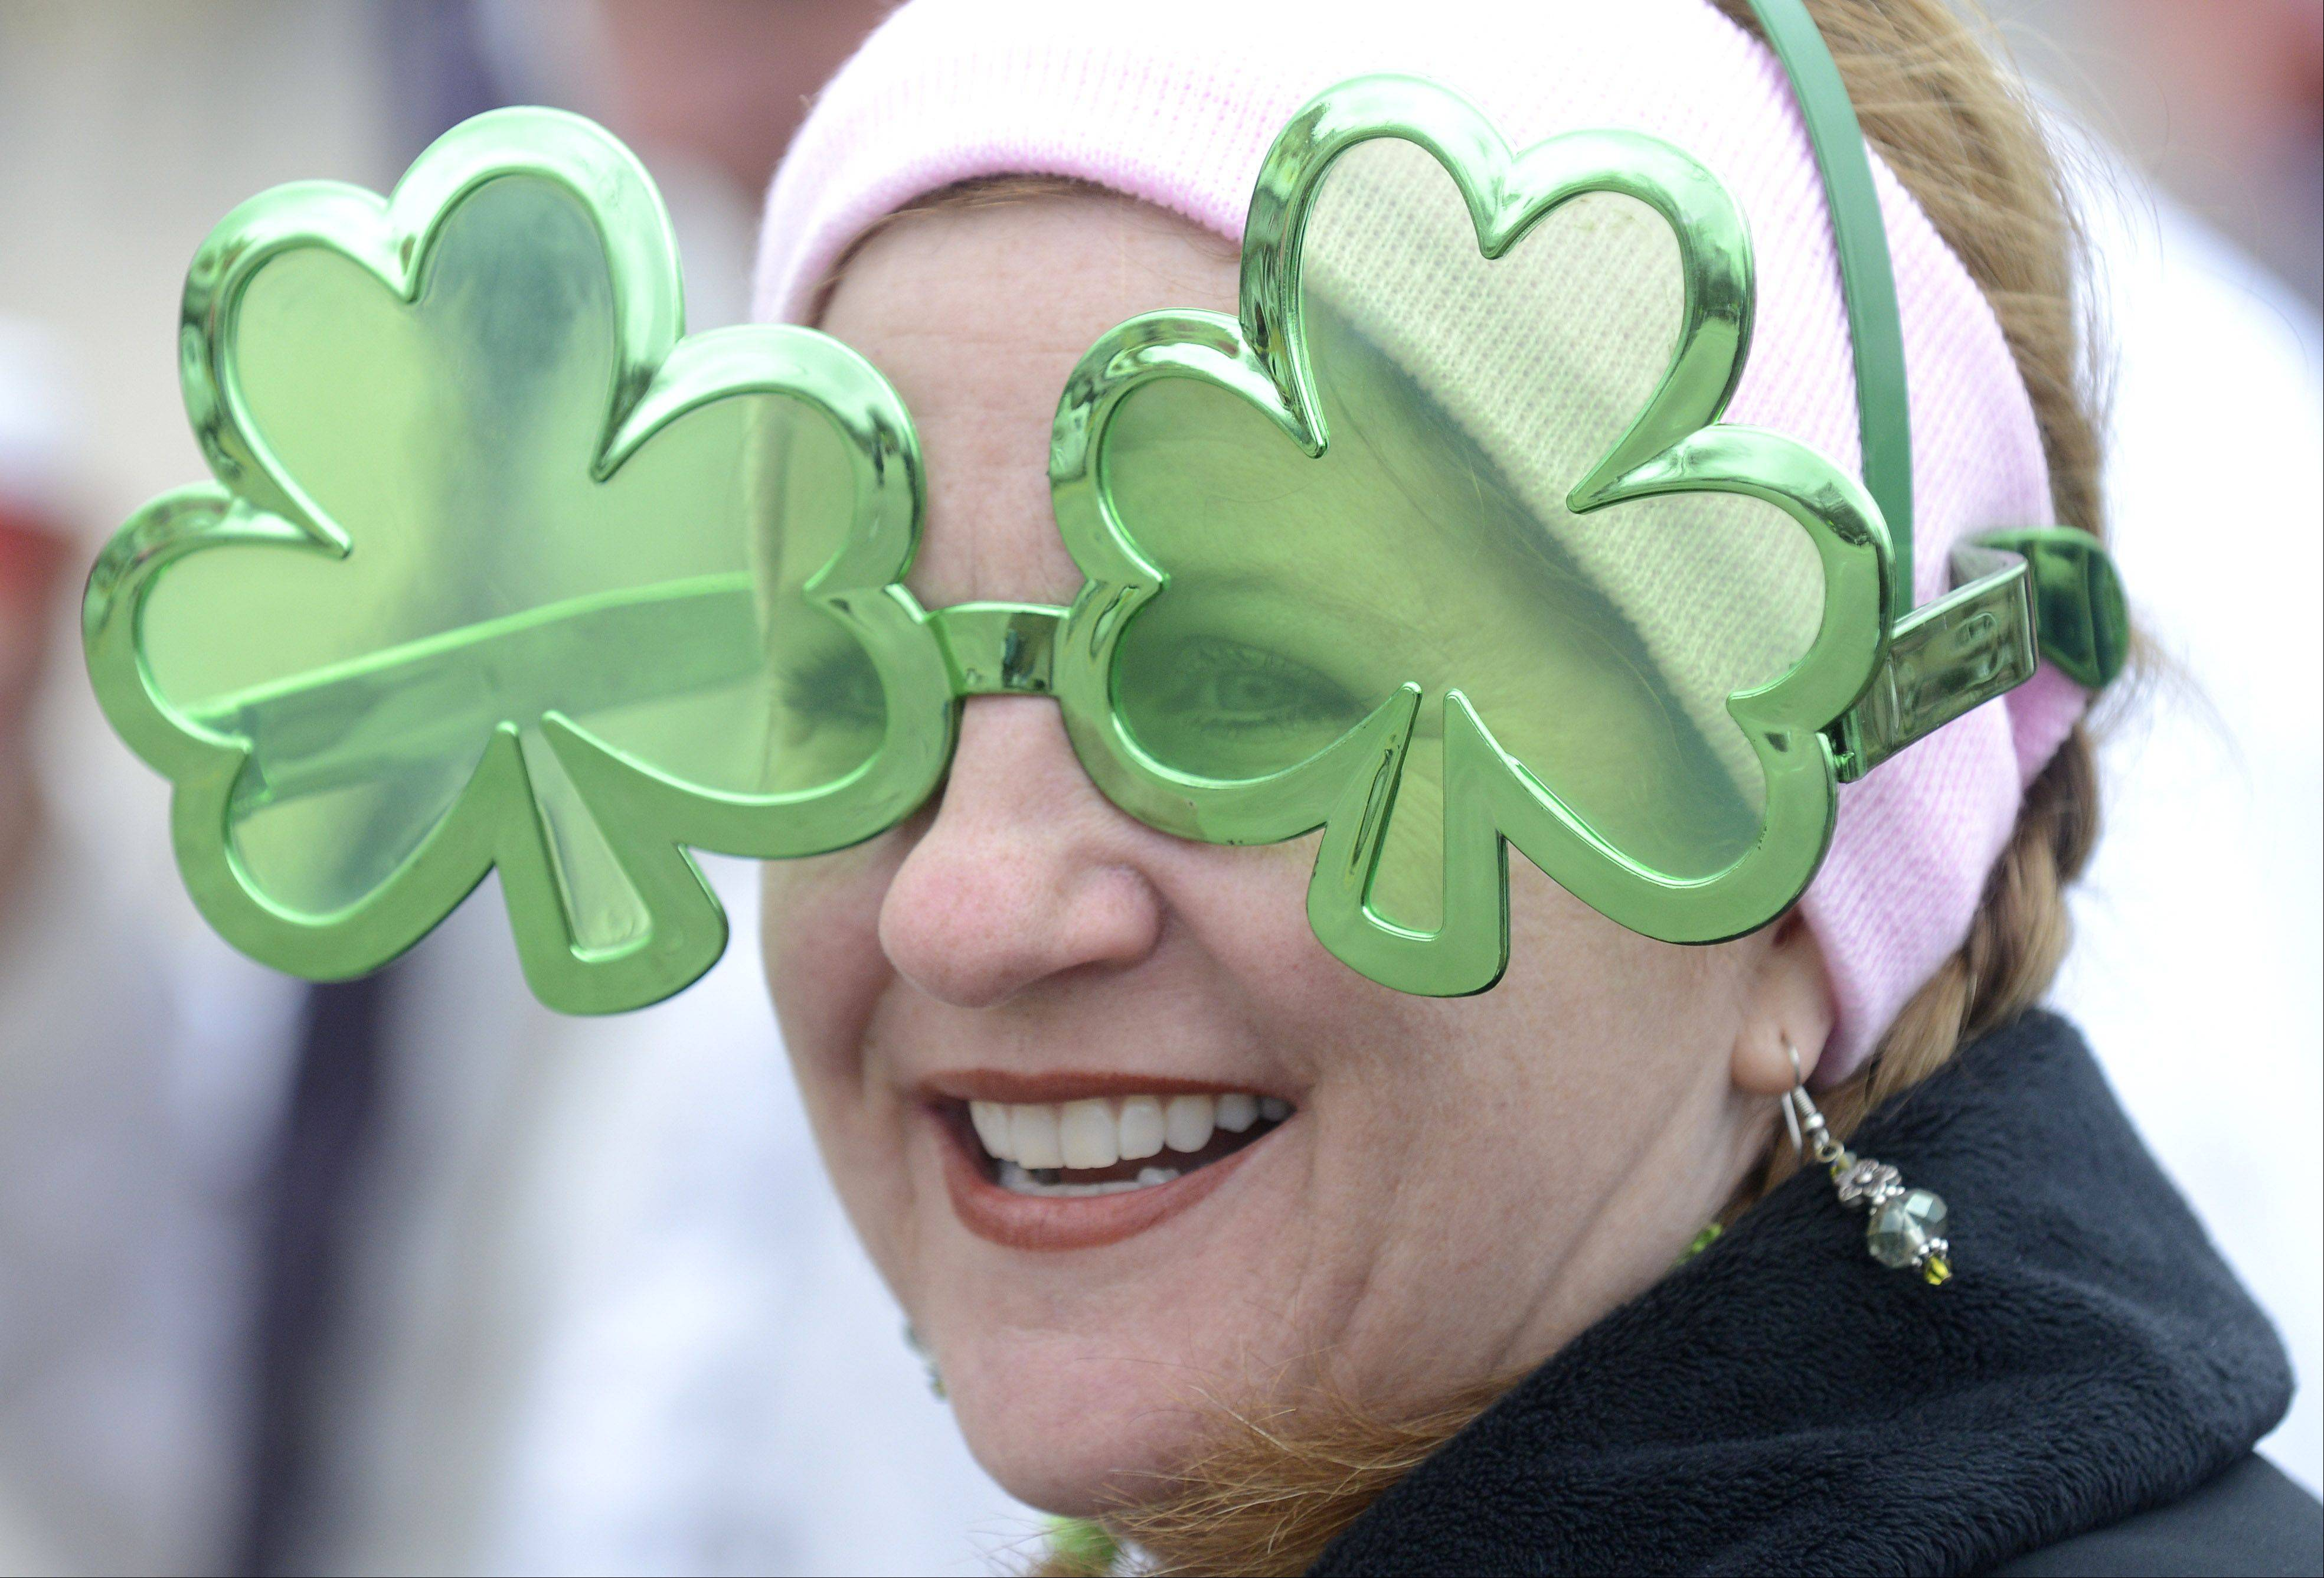 Ronda Baird of St. Charles wears funny shamrock glasses to the St. Patrick's Day parade Saturday in St. Charles.